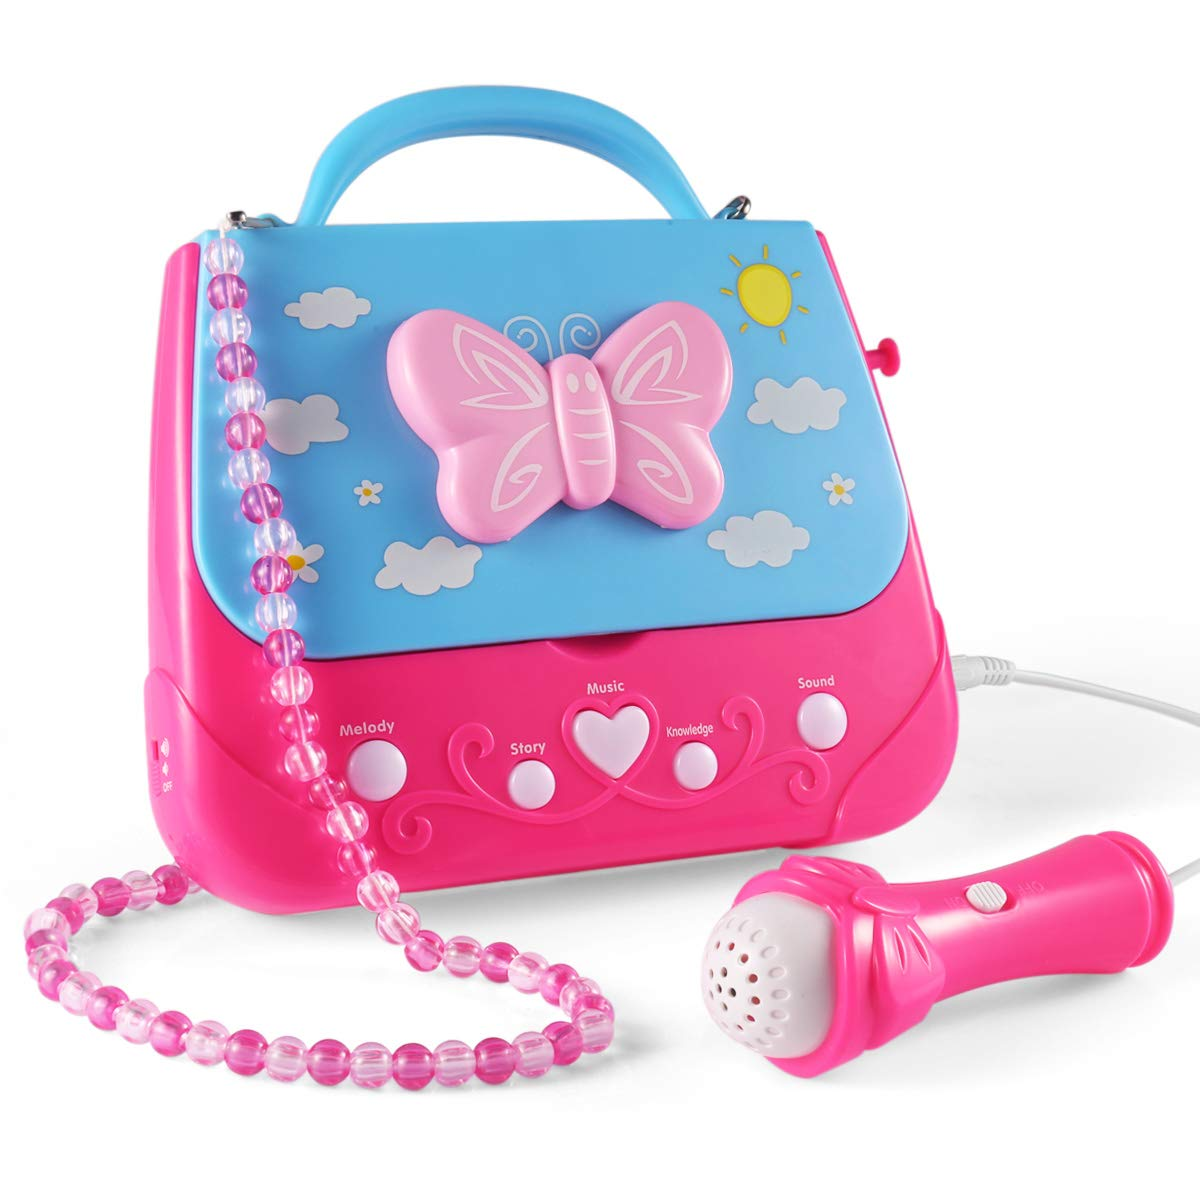 Kids Karaoke Machine, Car Guardiance Girls Karaoke Machine Toys Music Player with Microphone and Lights, Battery Operated Portable Singing Machine with Adorable sing-along boom box for Girls